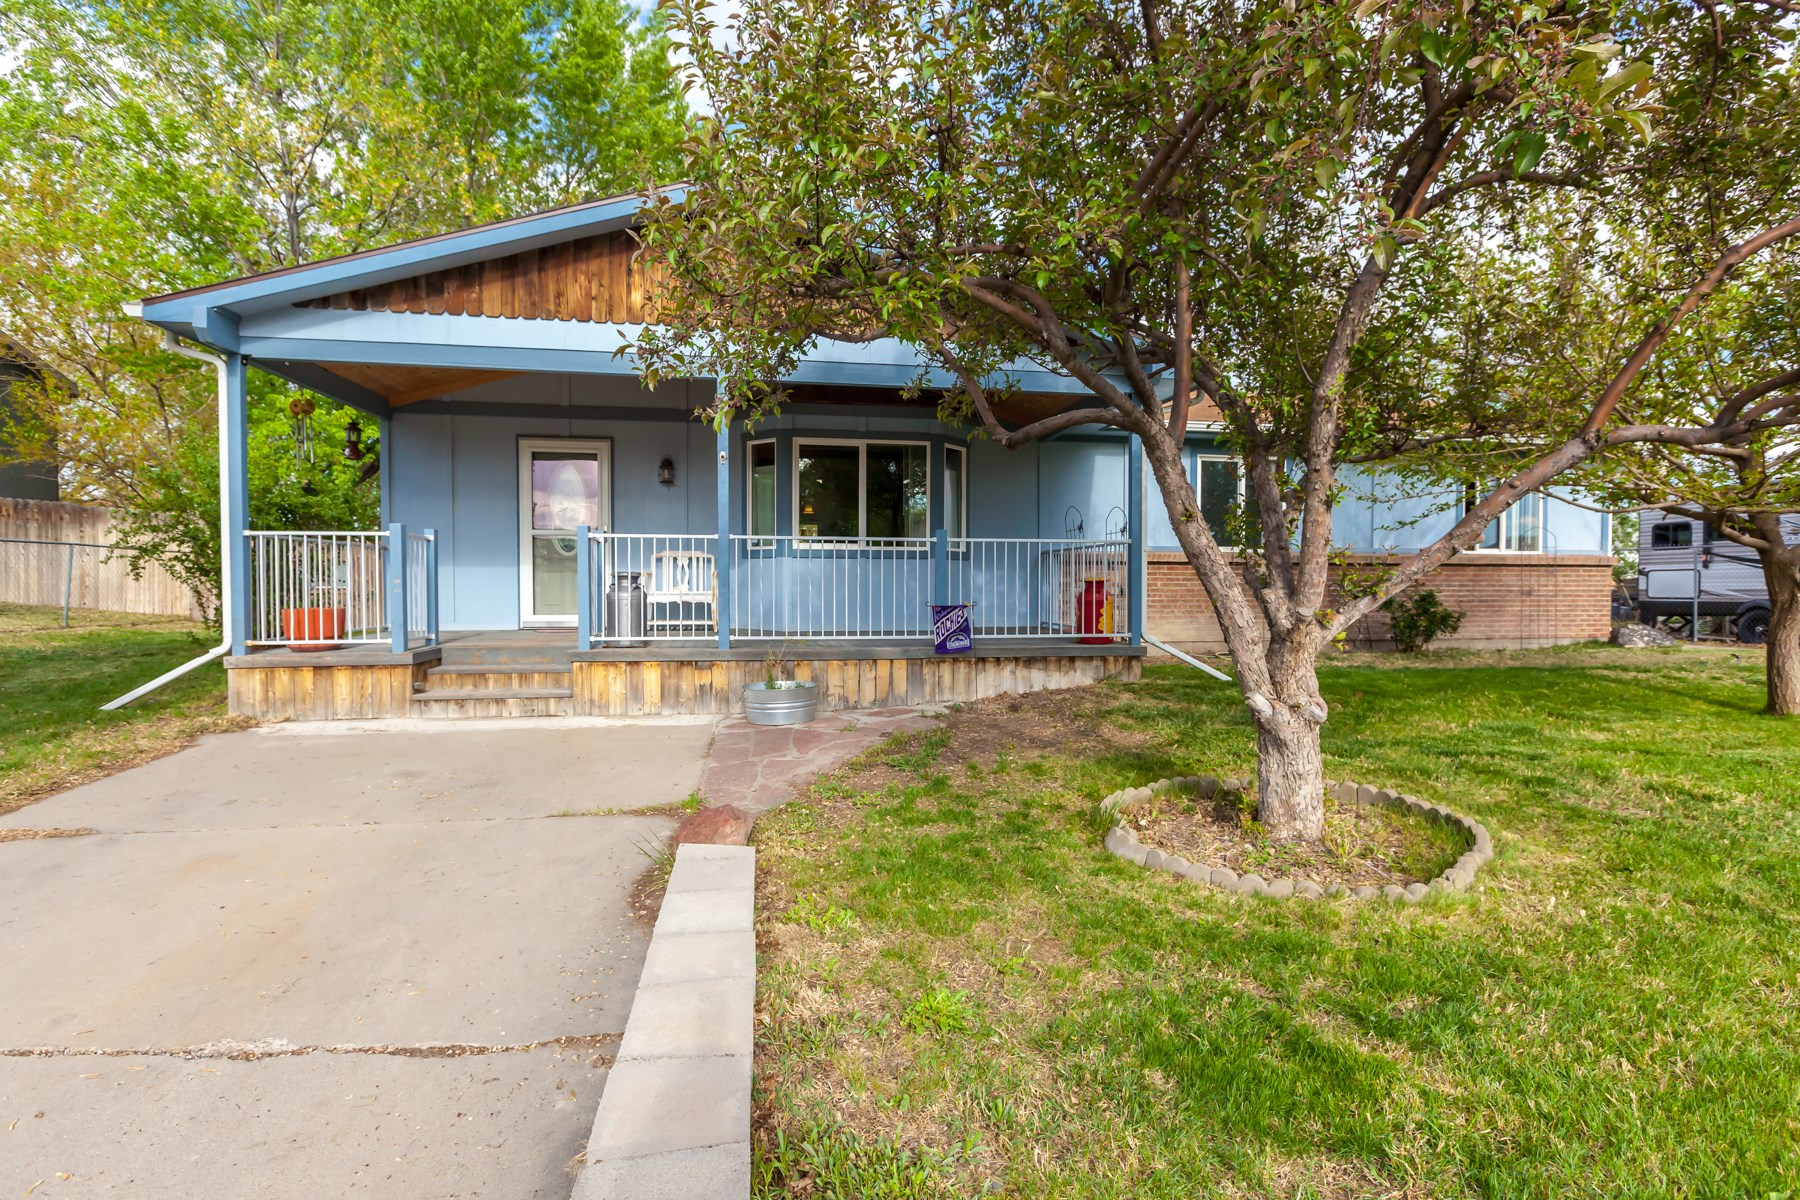 Home For Sale in Grand Junction CO NO HOA With Views!